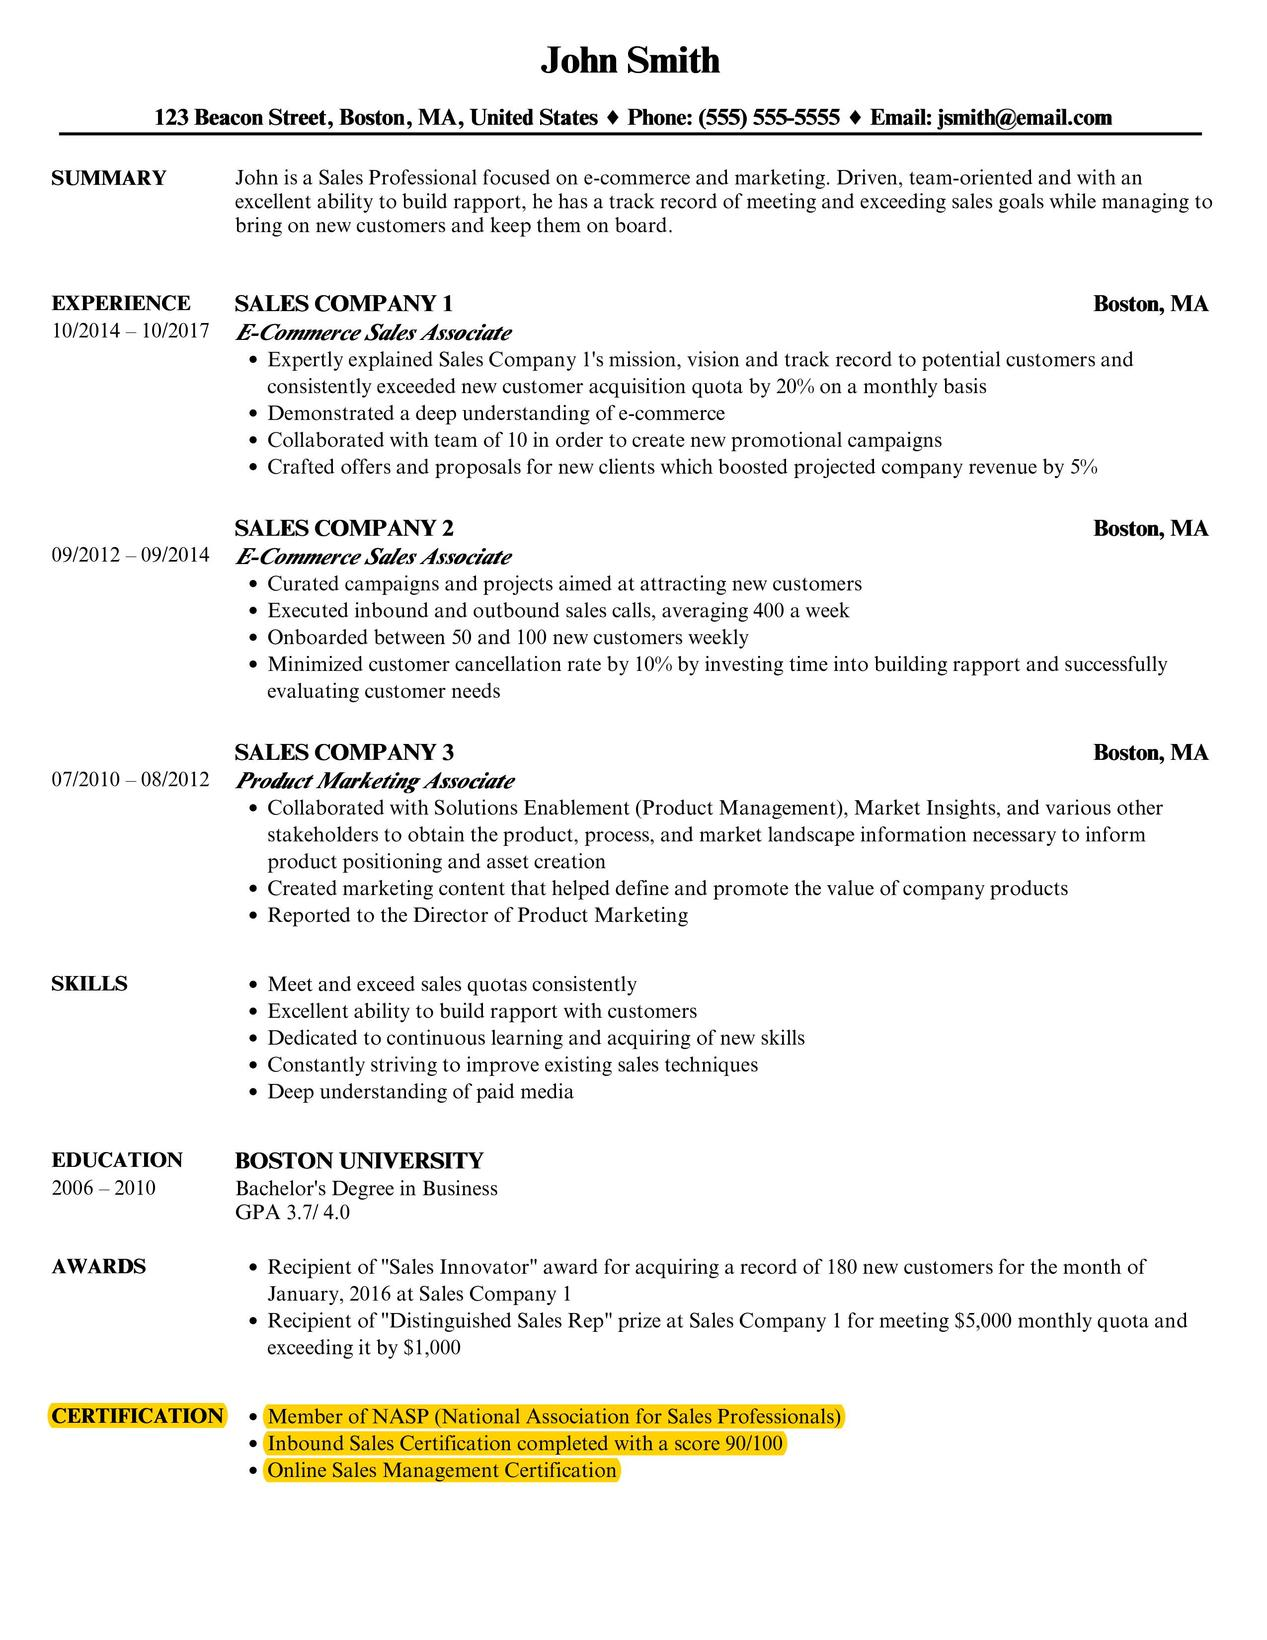 Resume Example. Add Your Certification Right After Your Education Section.  You Can Also Move It Down Below The SKILLS Section If Your Skills Are More  ...  Skills To Add To A Resume